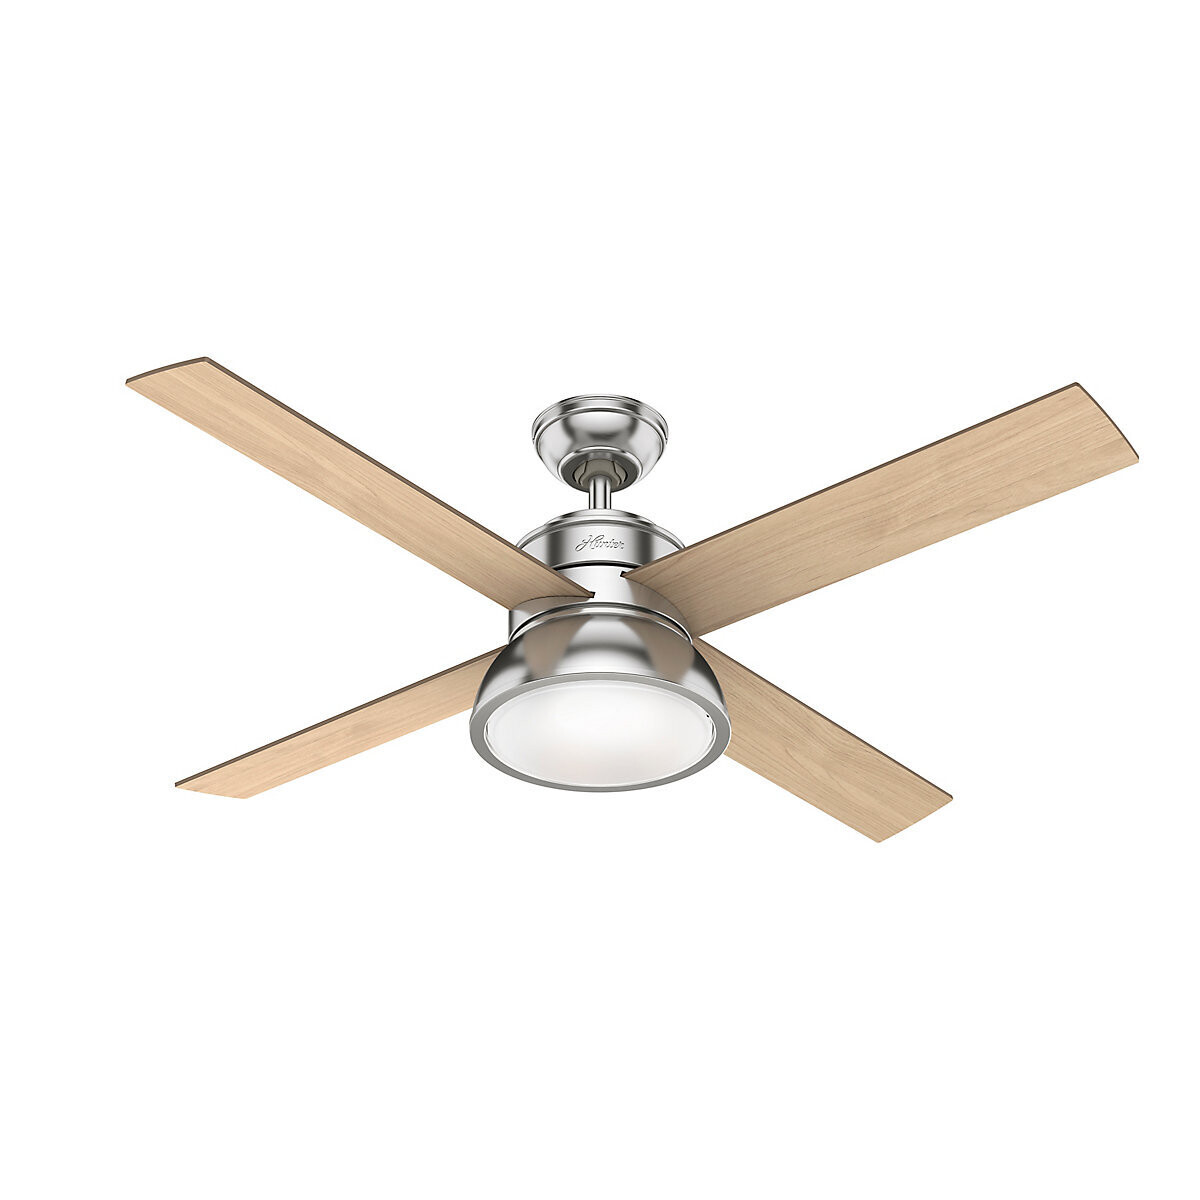 HUNTER LOKI Brushed Nickel ceiling fan Ø137 with Integrated Luminaire and Remote Control